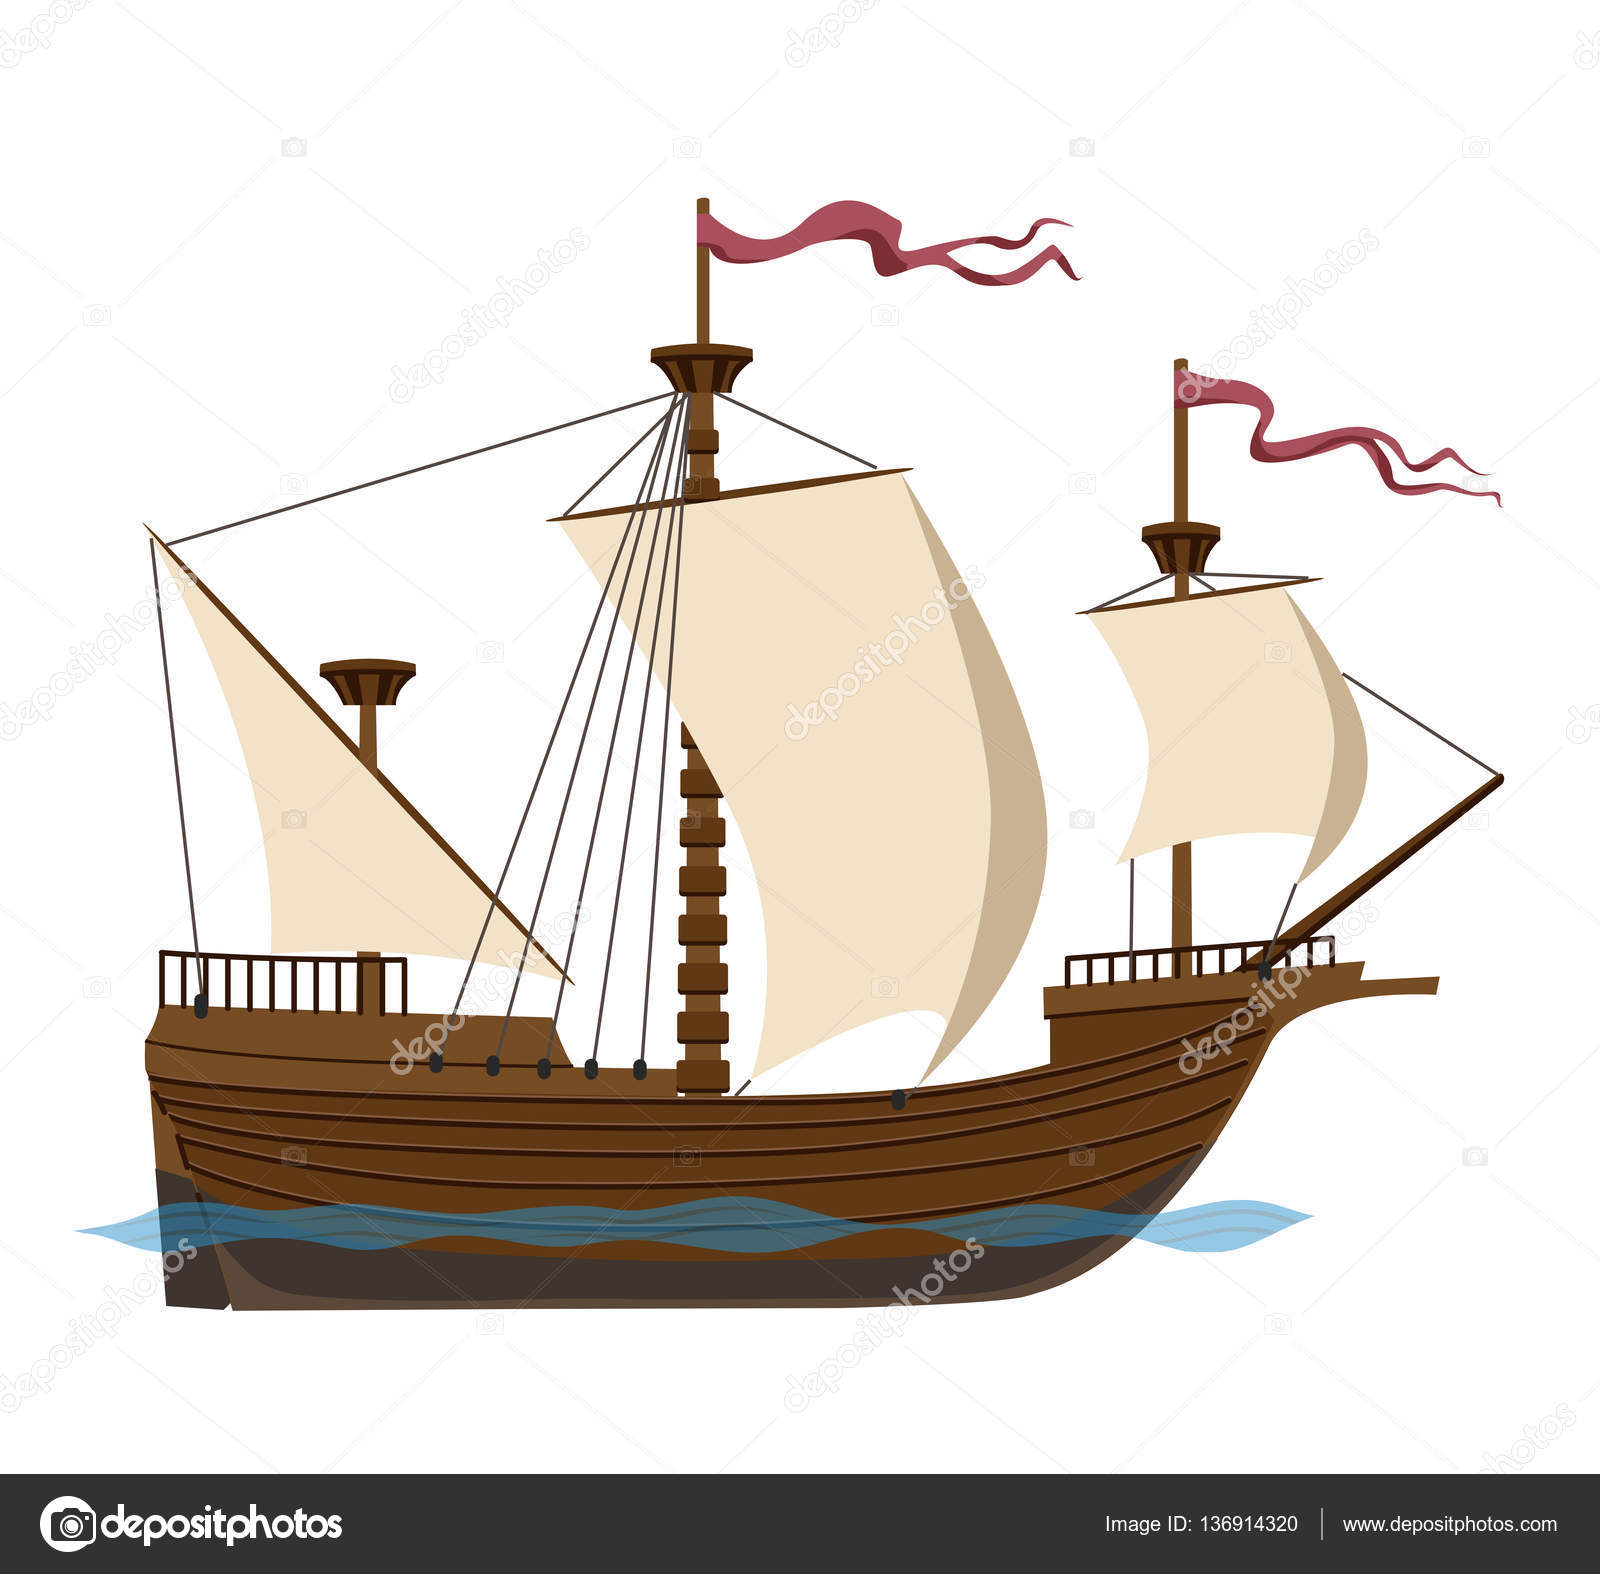 Sailing clipart big boat Square ark beautiful river ship